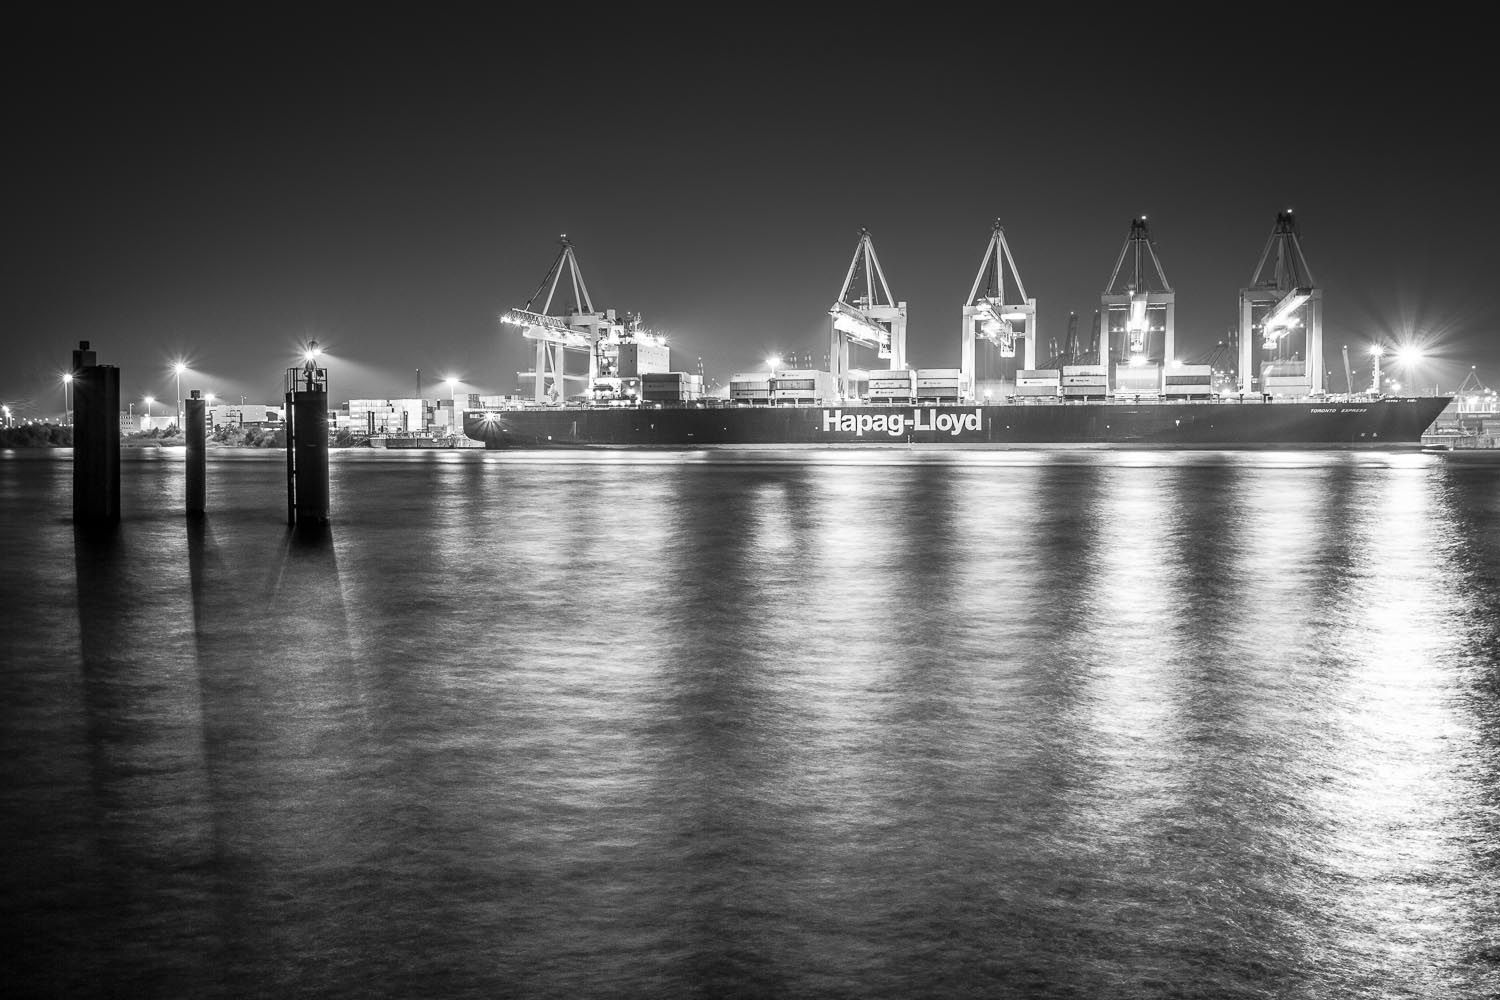 Ship yard in the port of Hamburg. Hapag Lloyd. Black and white photo. Photo by Hinrich Carstensen